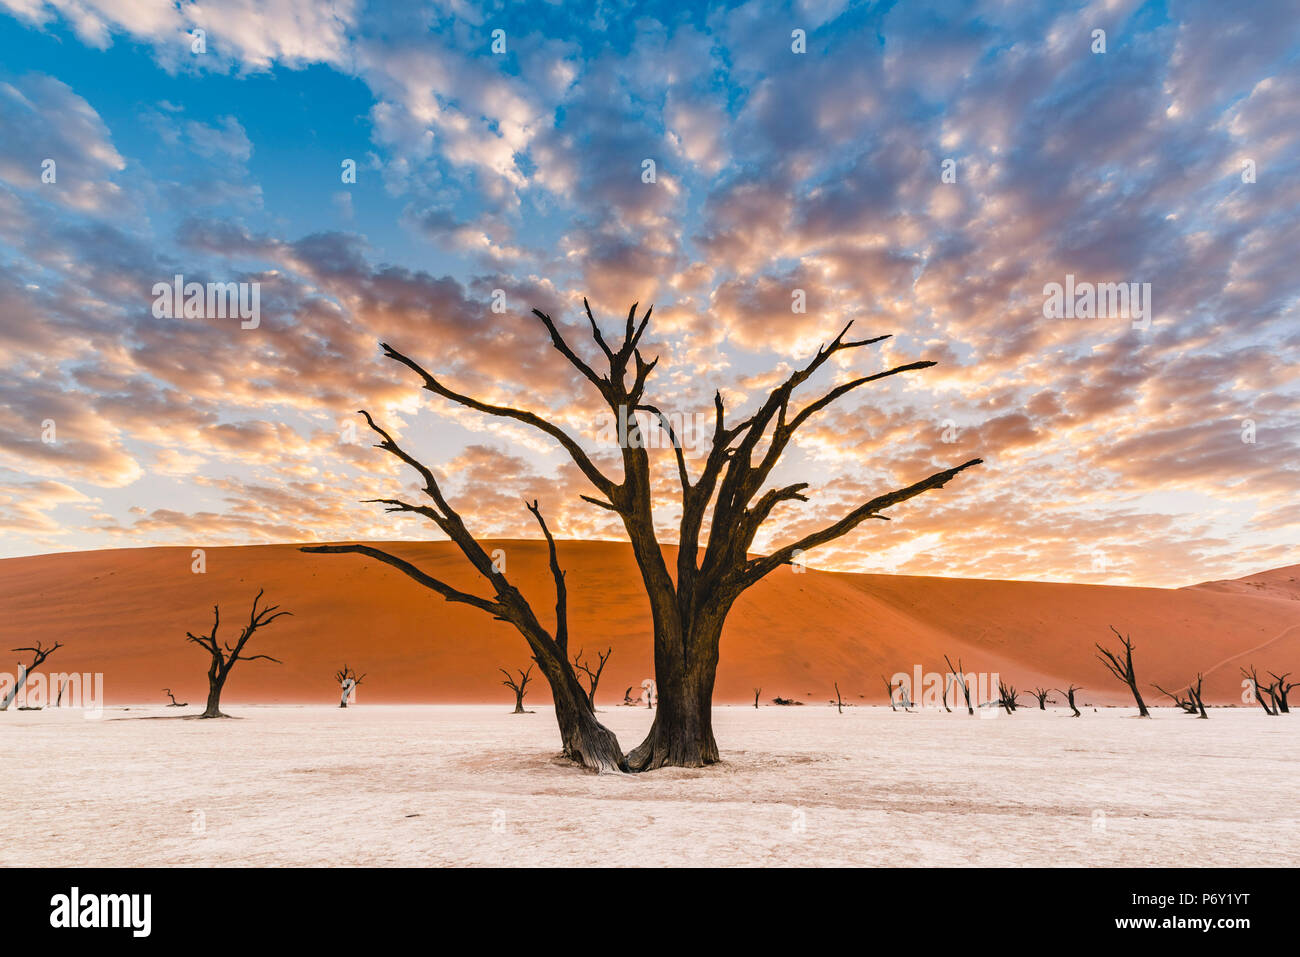 Deadvlei clay pan, Namib-Naukluft National Park, Namibie, Afrique. Acacia arbres morts et des dunes de sable. Photo Stock